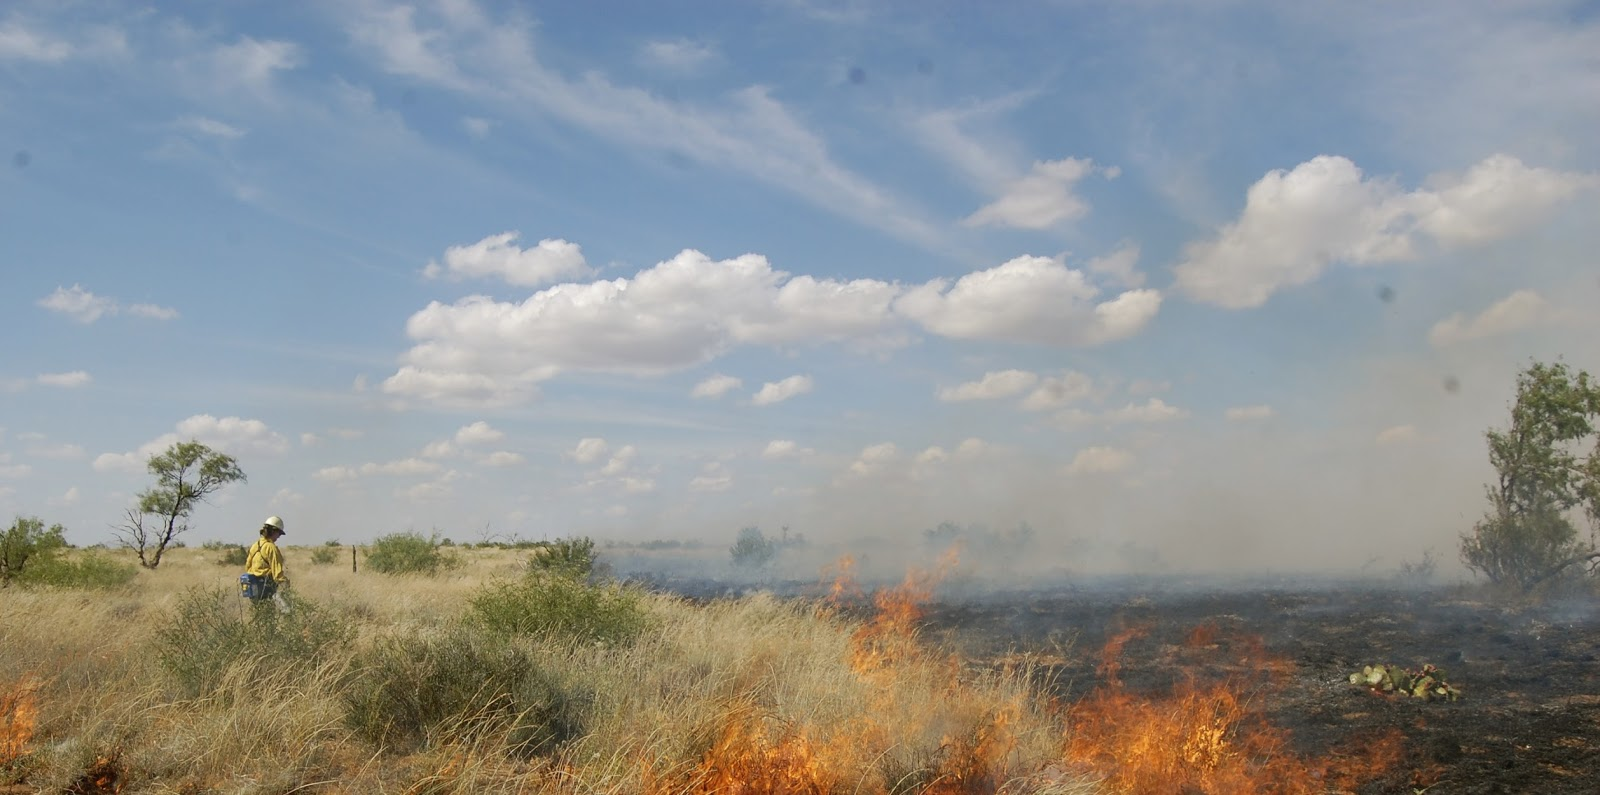 Ignition operations on an RX-burn at the Matador WMA. Image: Verble Fire Ecology Lab.